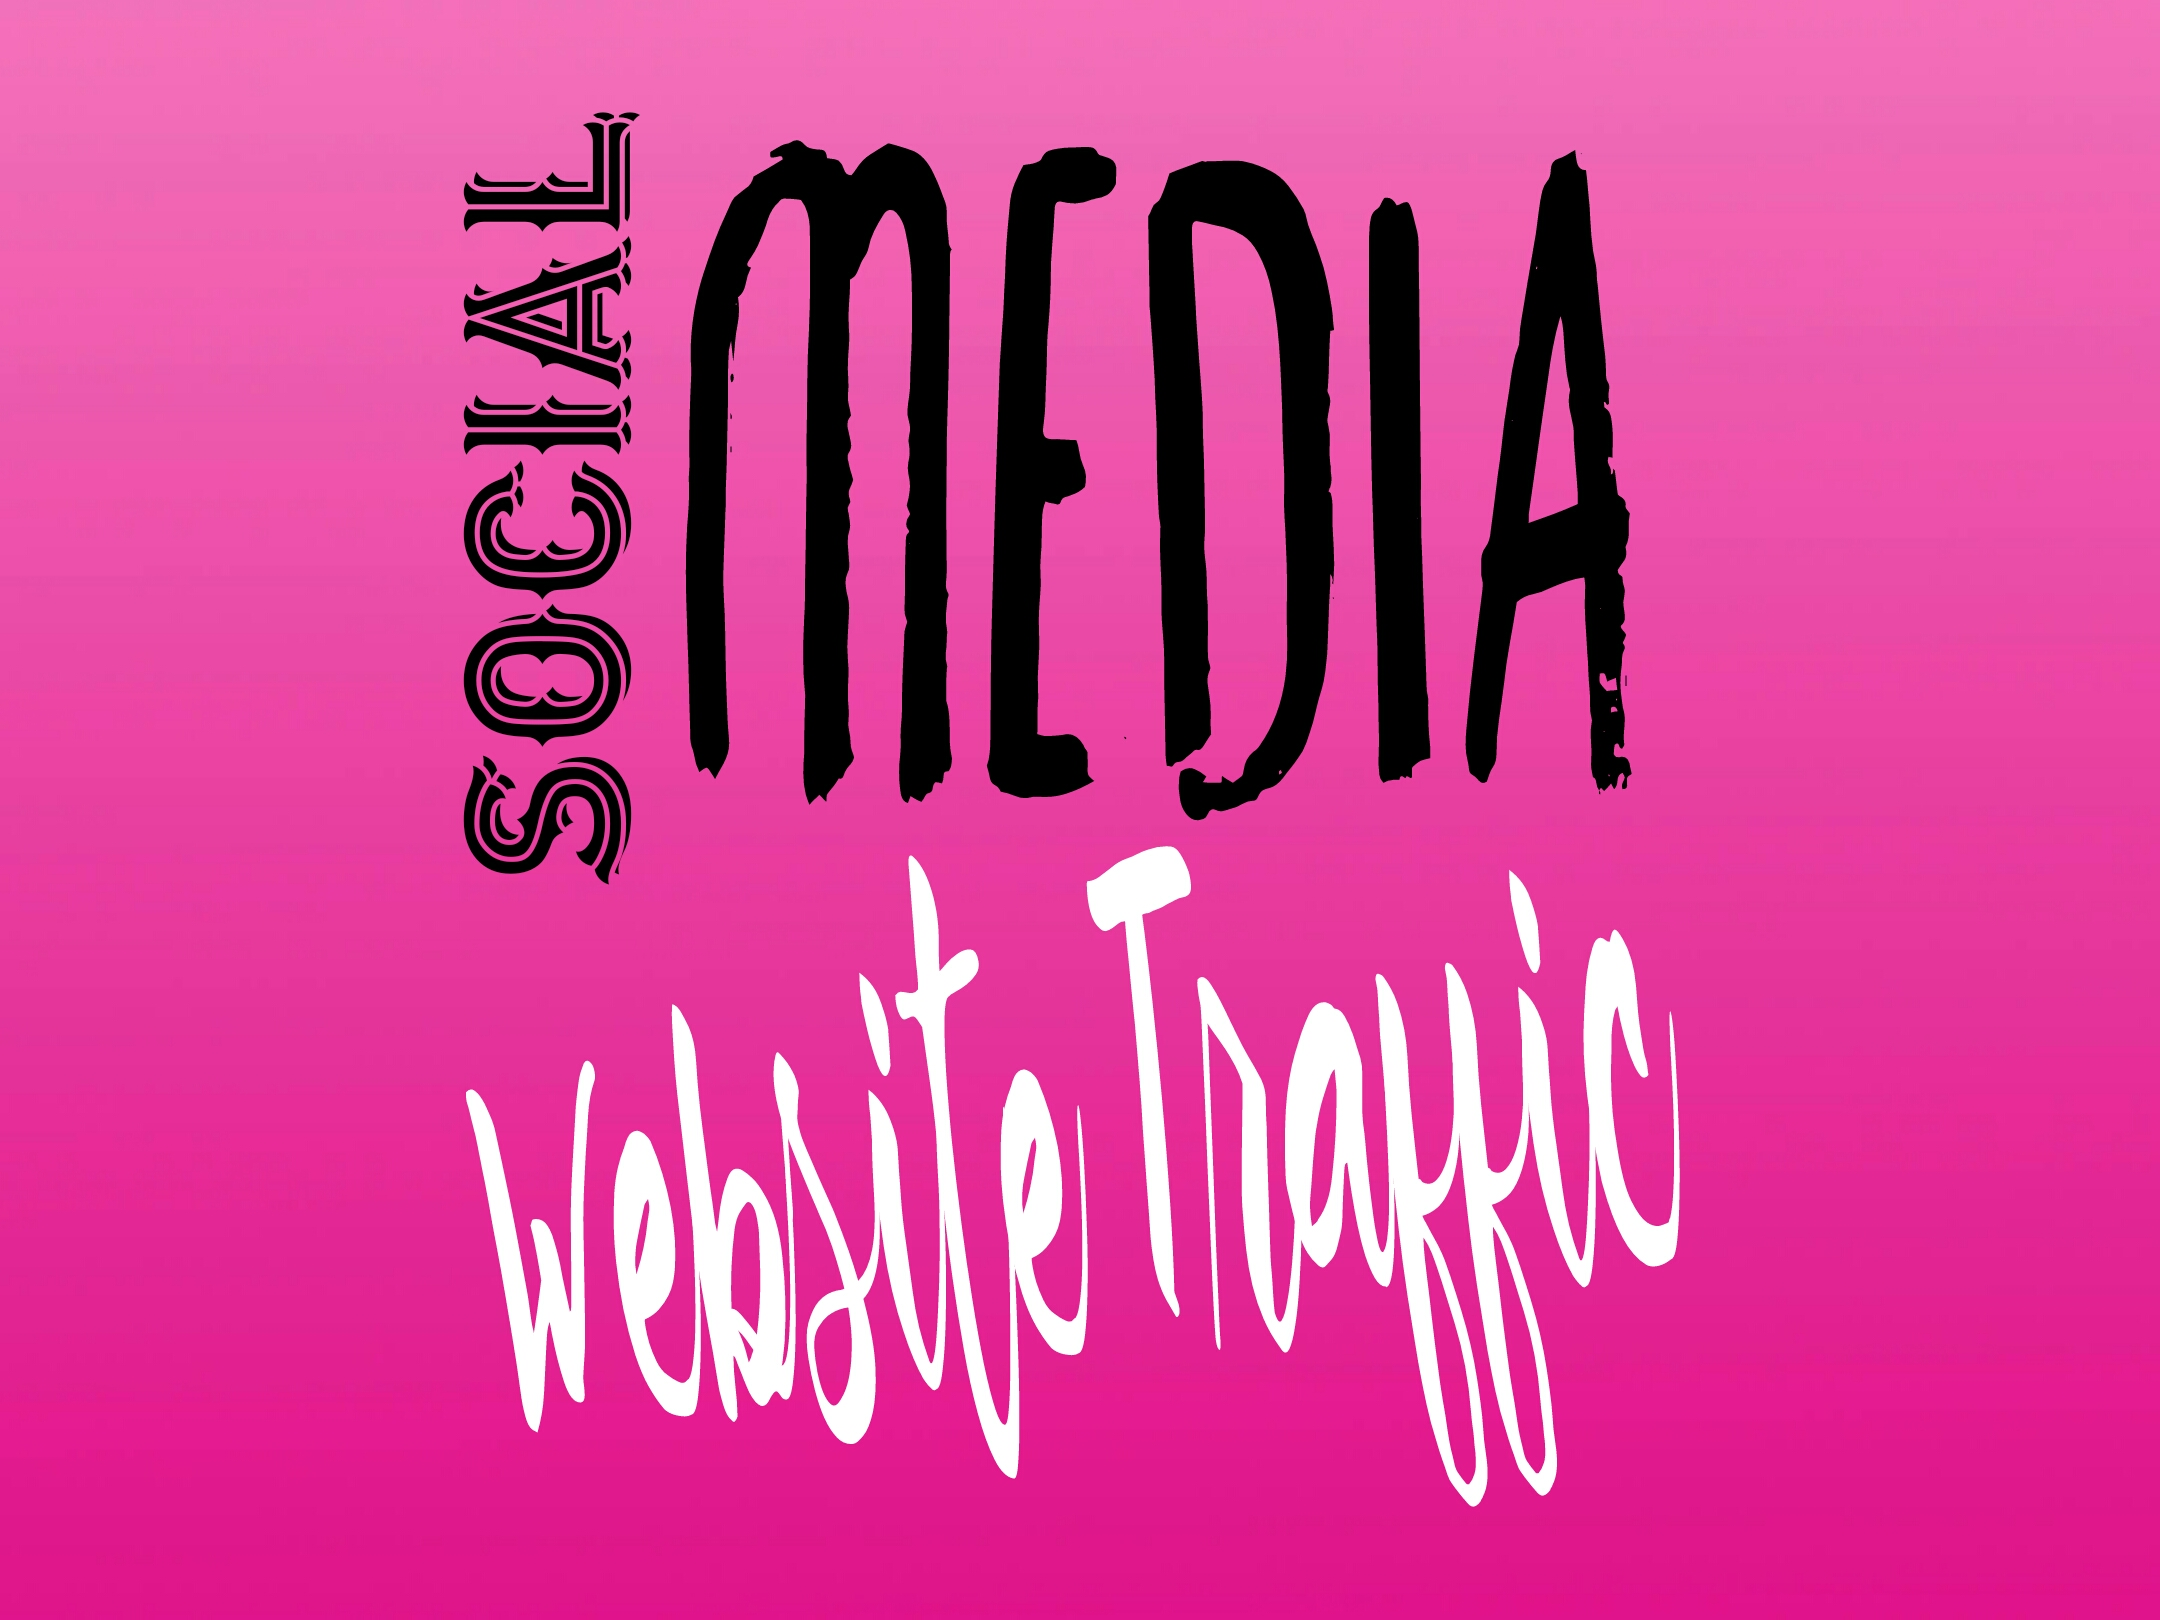 WEBSITE TRAFFIC for Up to 22 Social Media